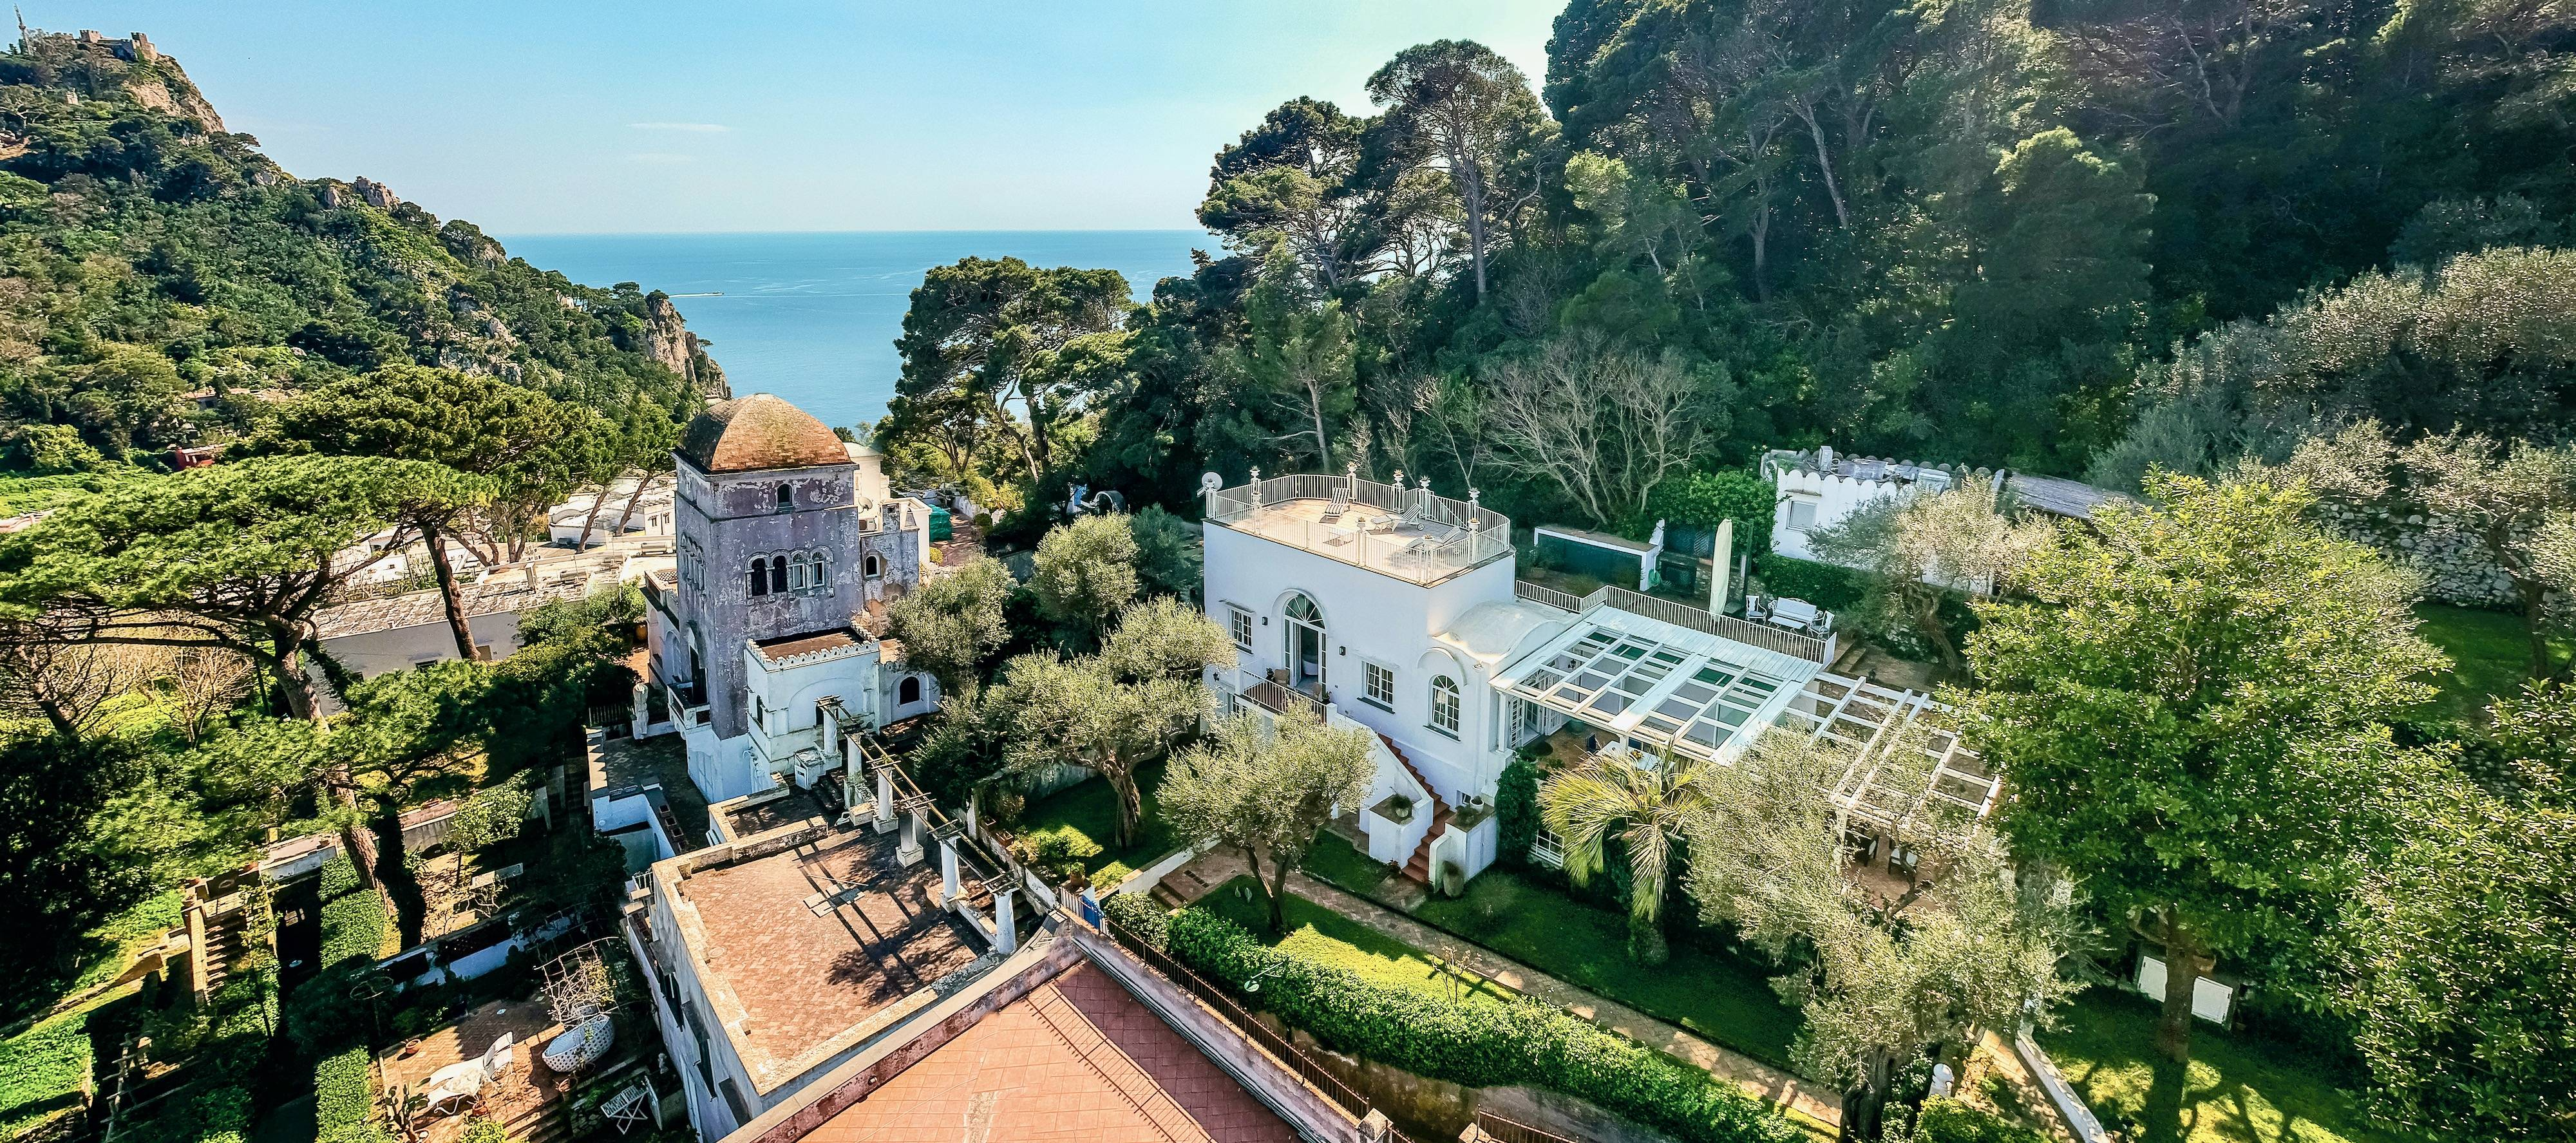 Villa Quattro Venti, once owned by friends of D.H. Lawrence, is for sale on the island of Capri, Italy. (Courtesy of Lionard)